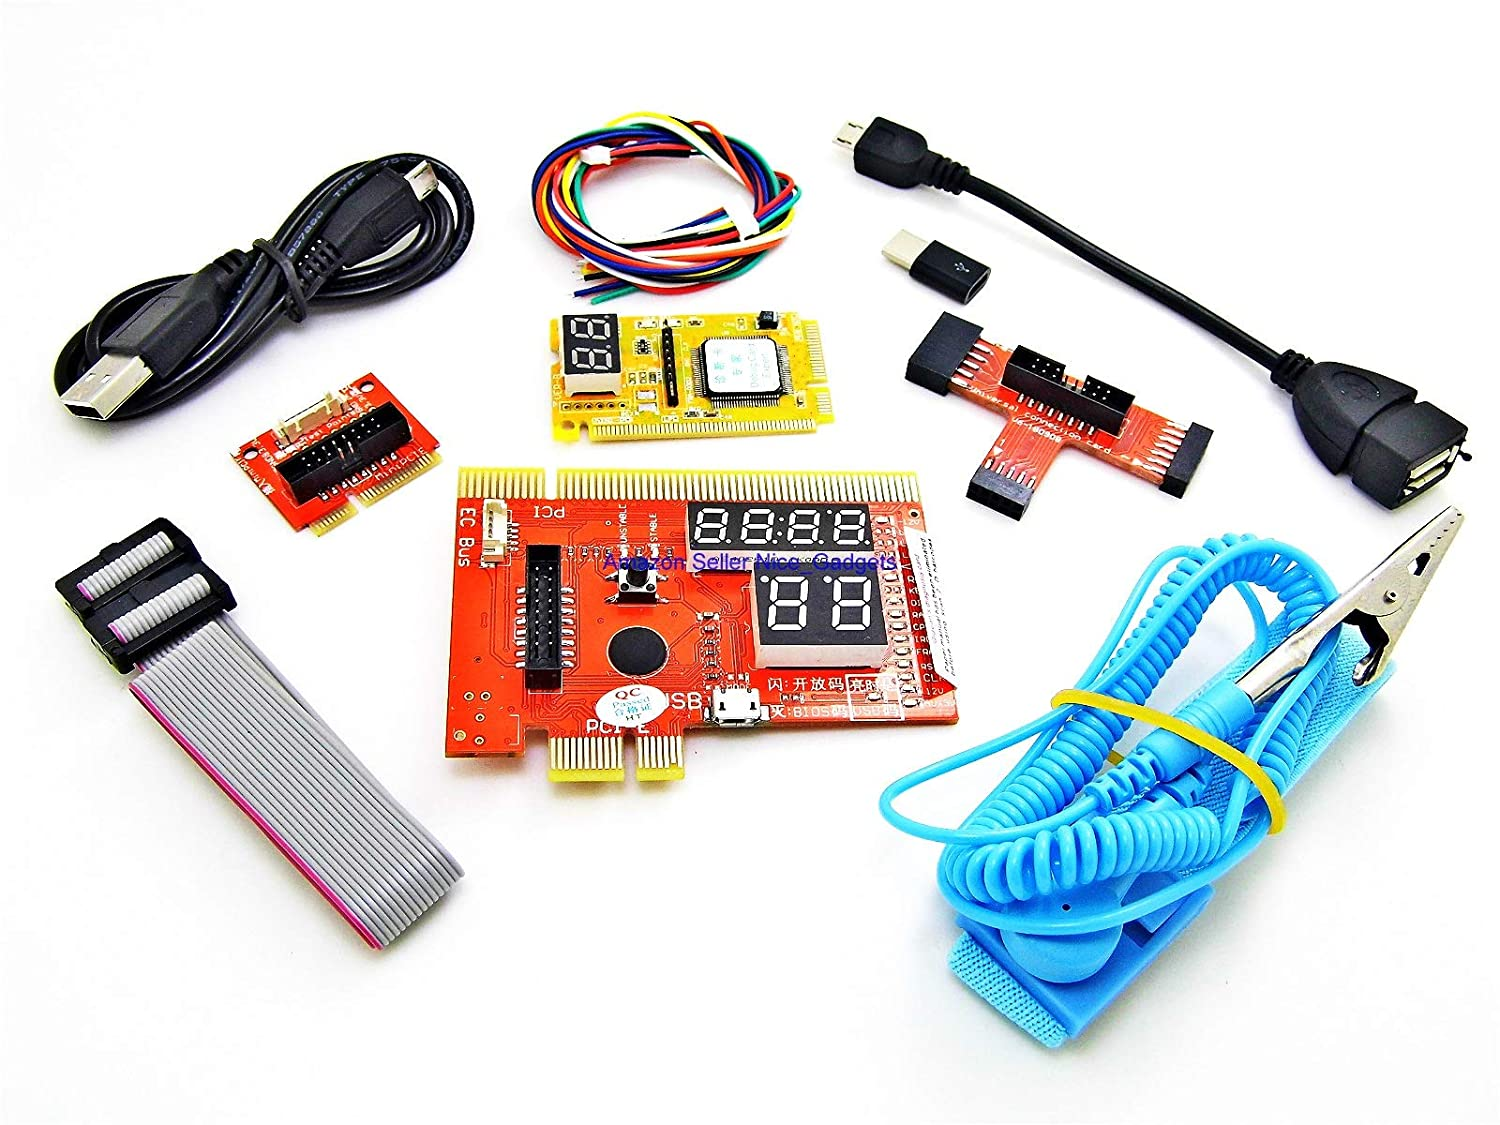 repair skills practice kit includes circuit board with defects